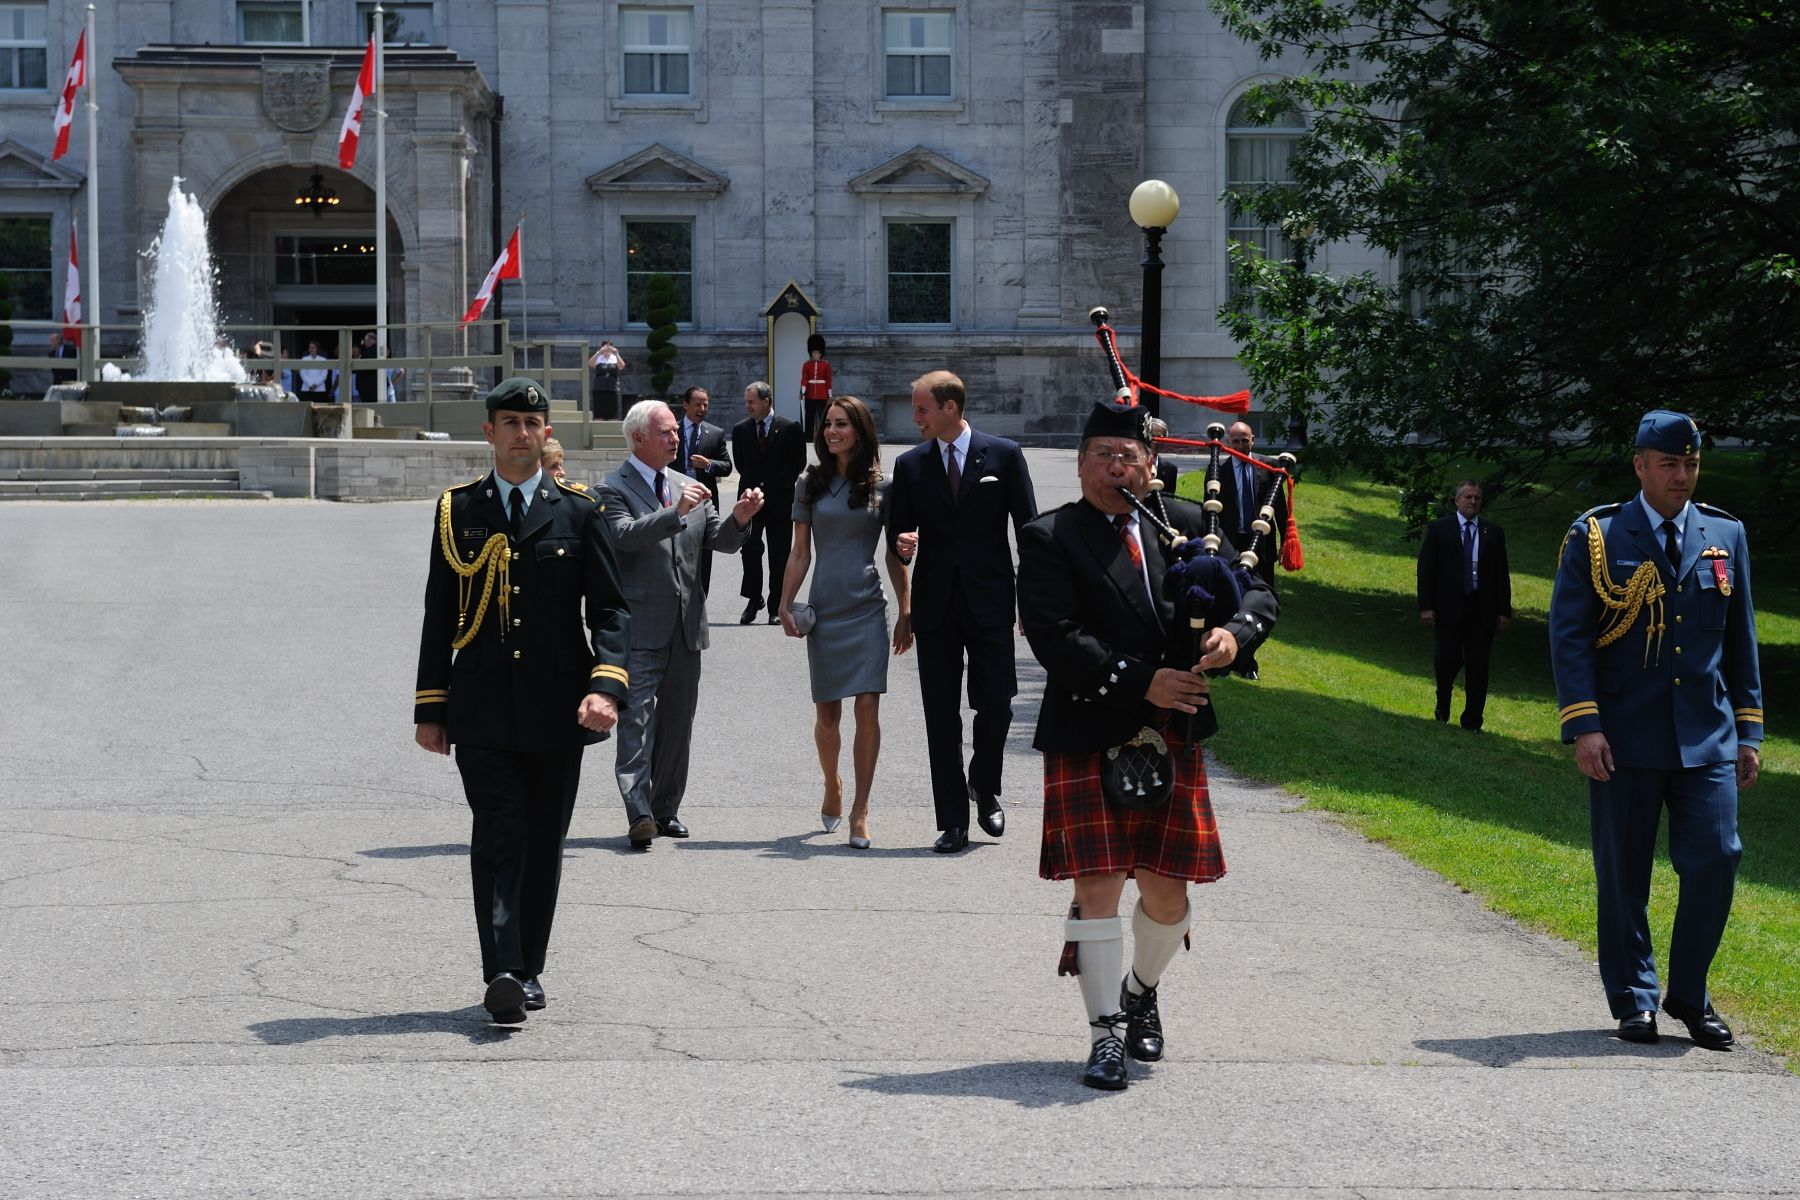 Prior to their departure from Rideau Hall, Their Royal Highnesses The Duke and Duchess of Cambridge planted a tree in the presence of invited guests. Lead by a piper and accompanied by Their Excellencies the Right Honourable David Johnston, Governor General of Canada, and Mrs. Sharon Johnston, they walked to the designated location.